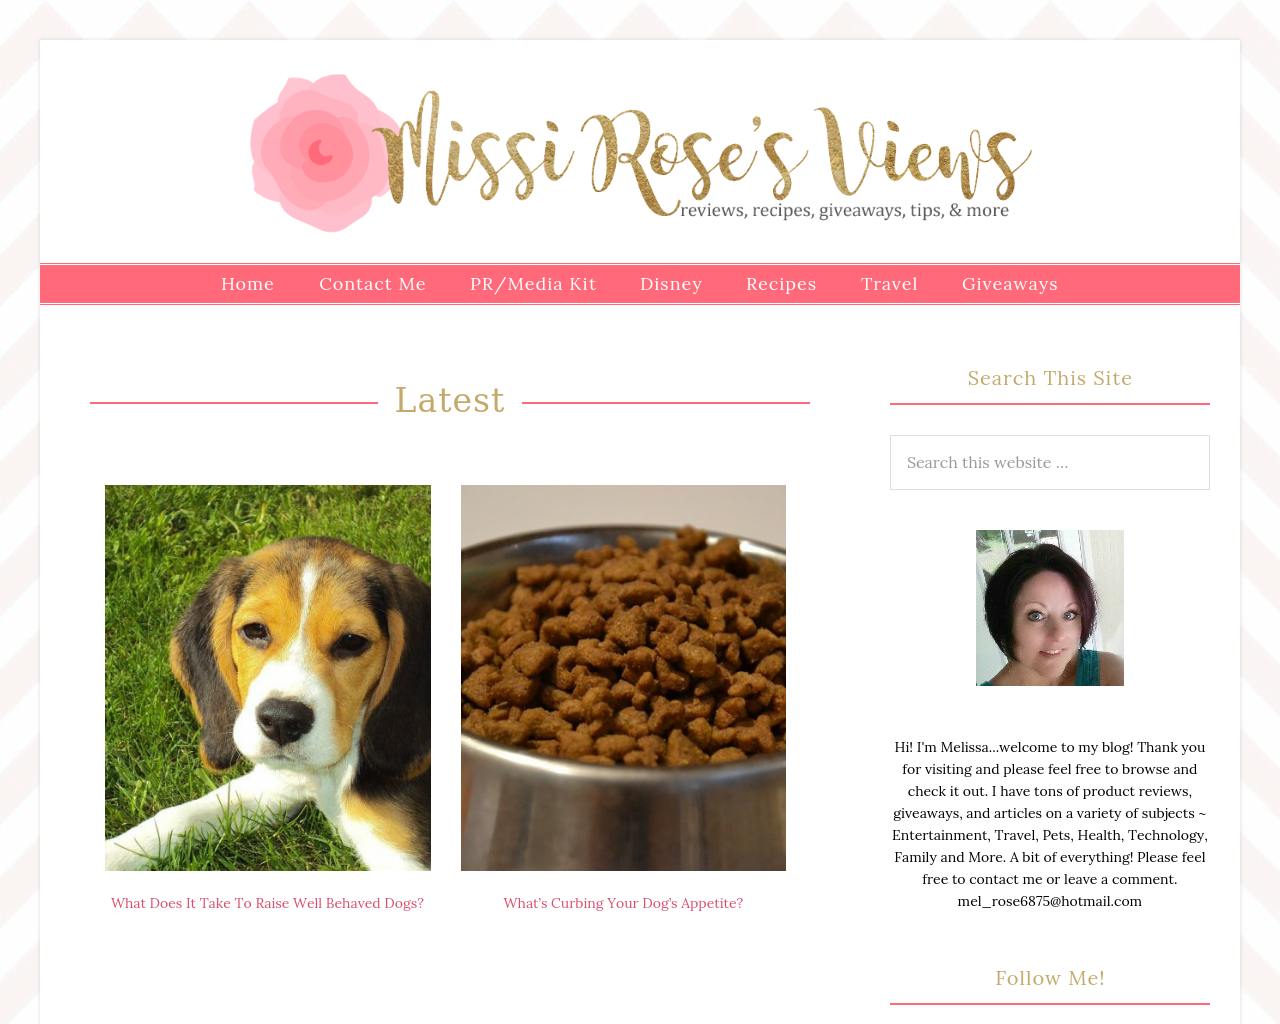 Missi-Rose's-Views-Advertising-Reviews-Pricing